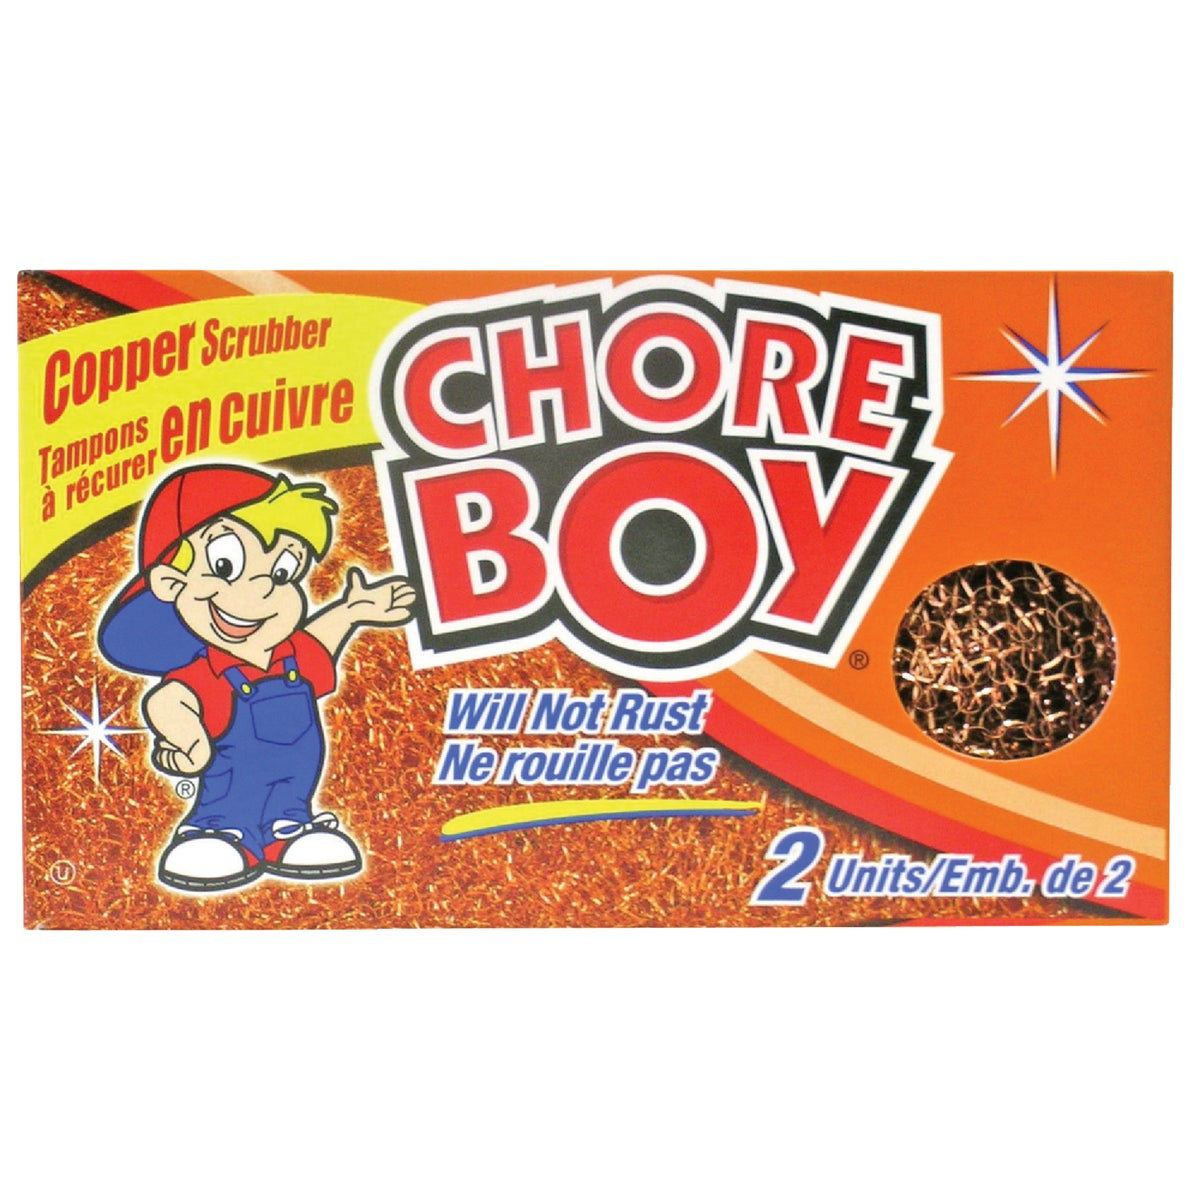 COPPER CHORE BOY